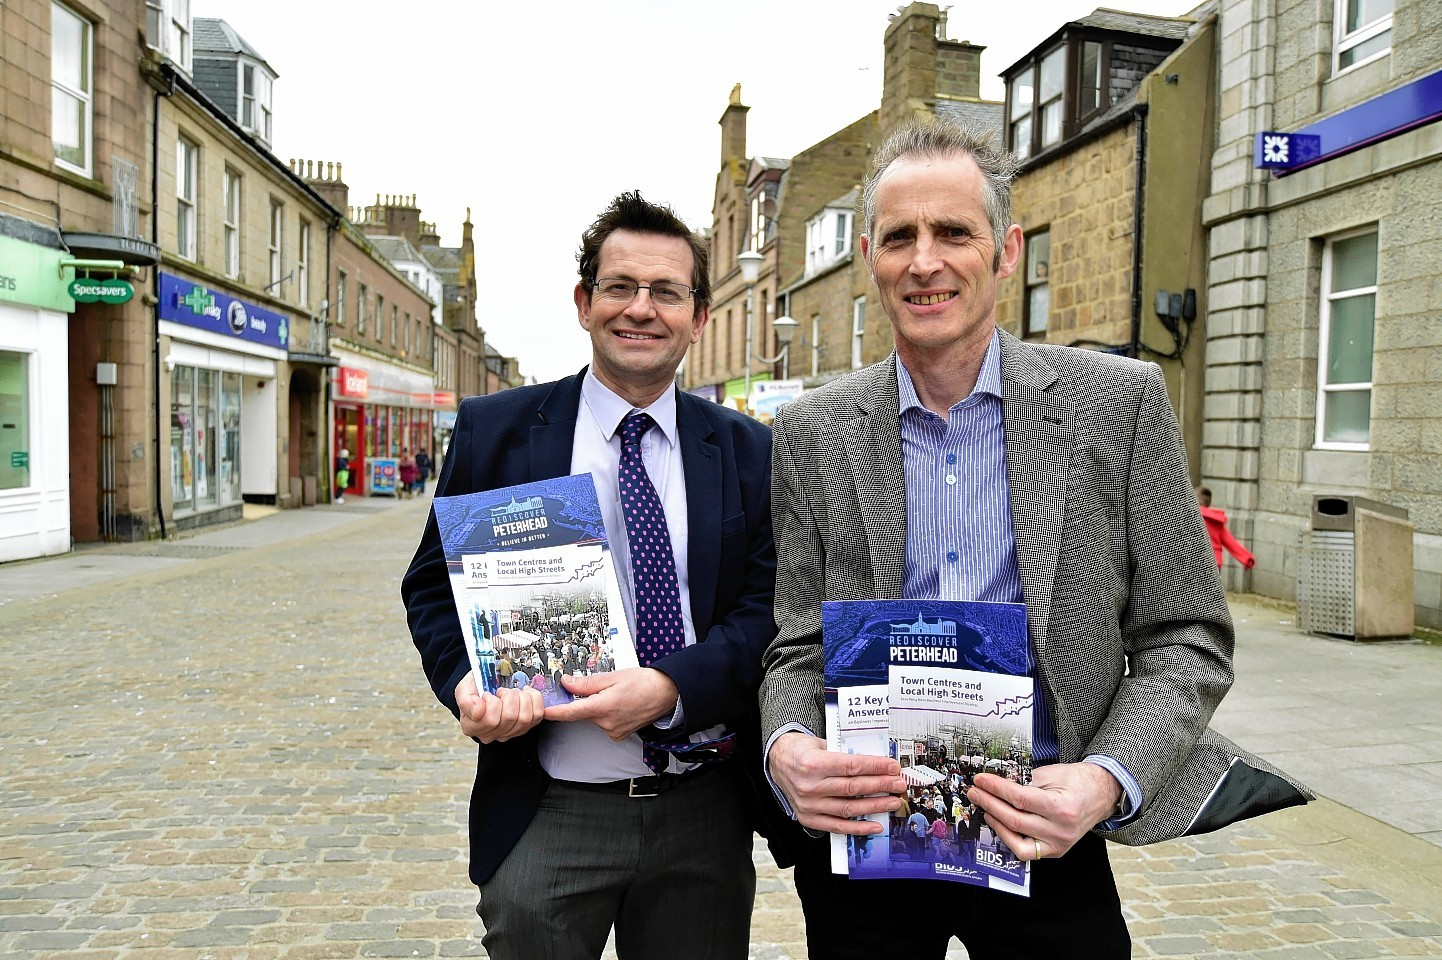 Iain Sutherland and John Pascoe in Peterhead town centre